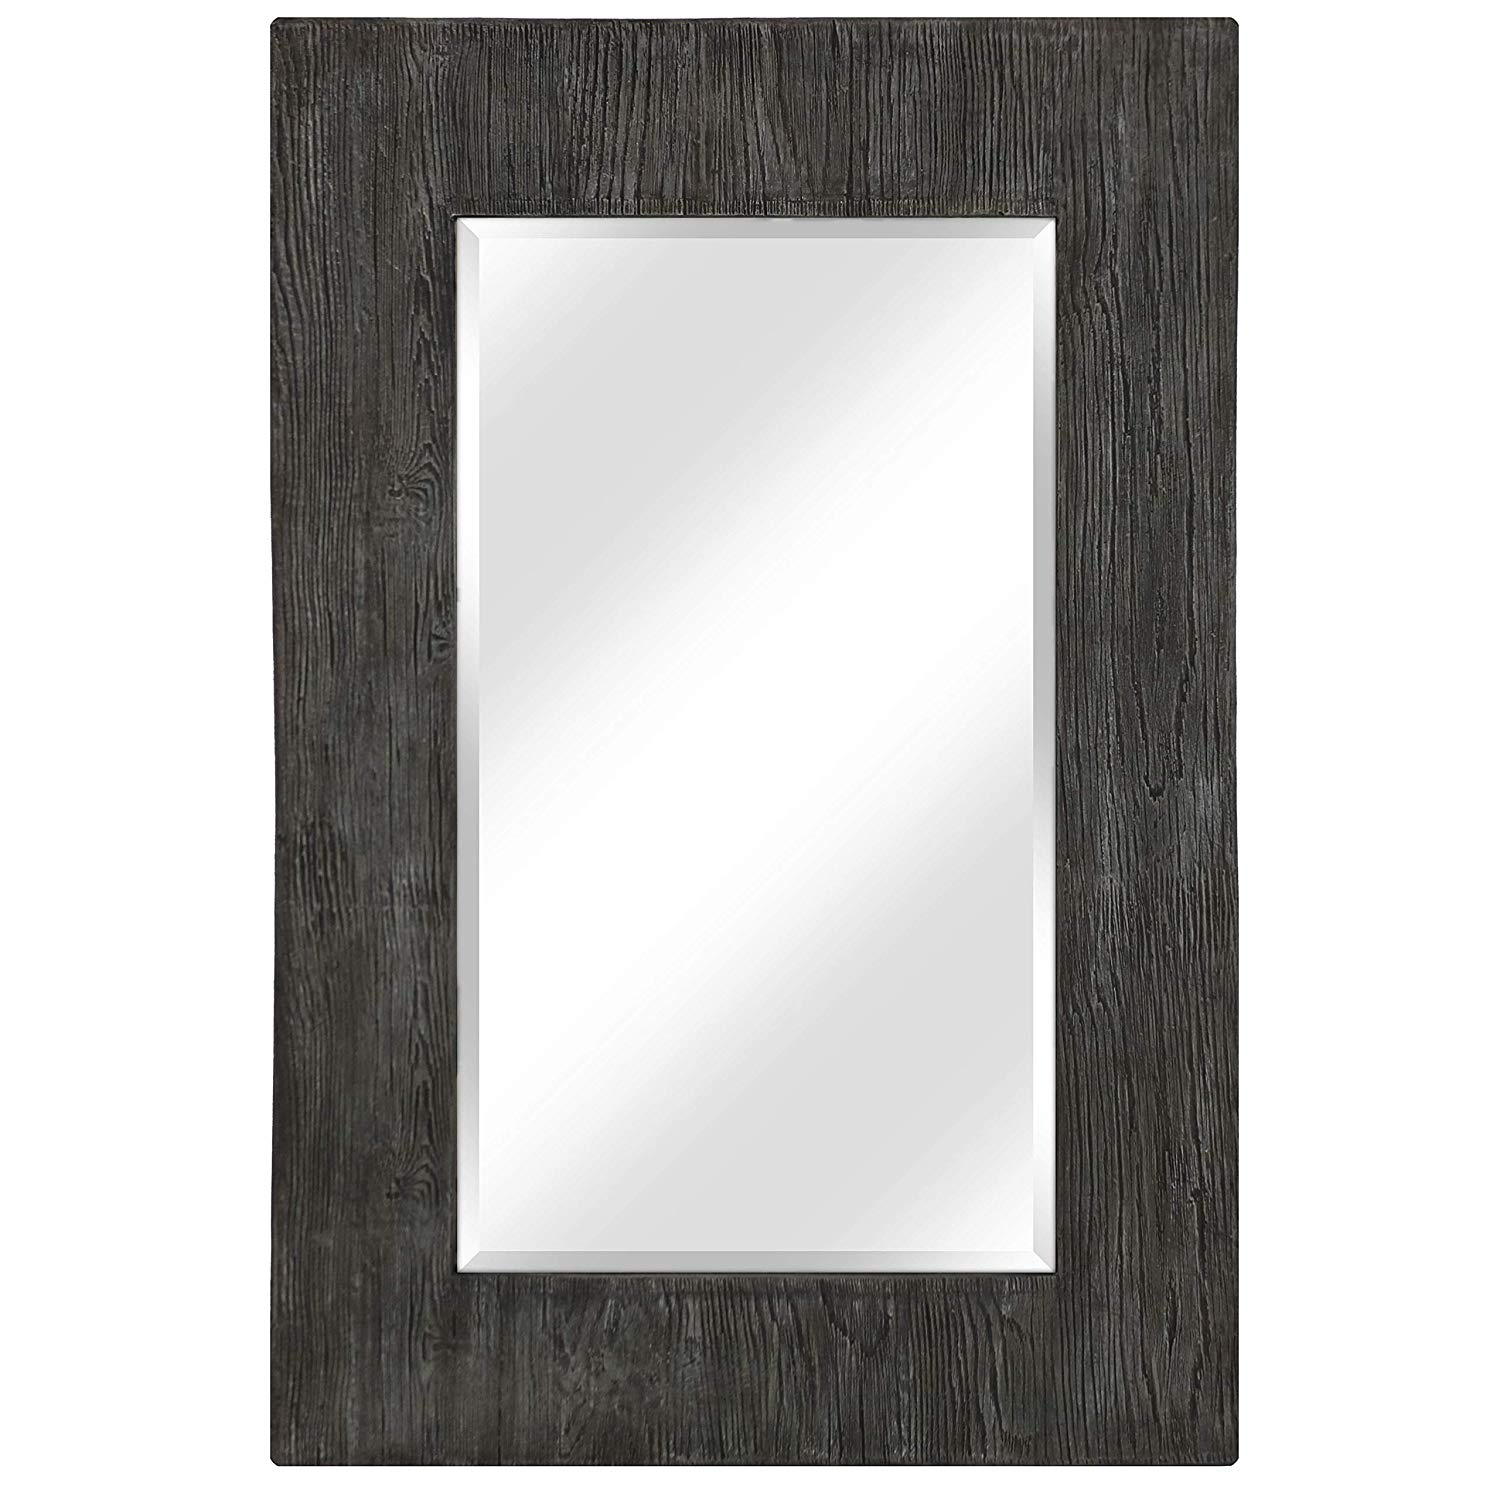 Marble Bathroom Accessories Mcs 66946 Chevron Mirror Bathroom Mirrors Bath